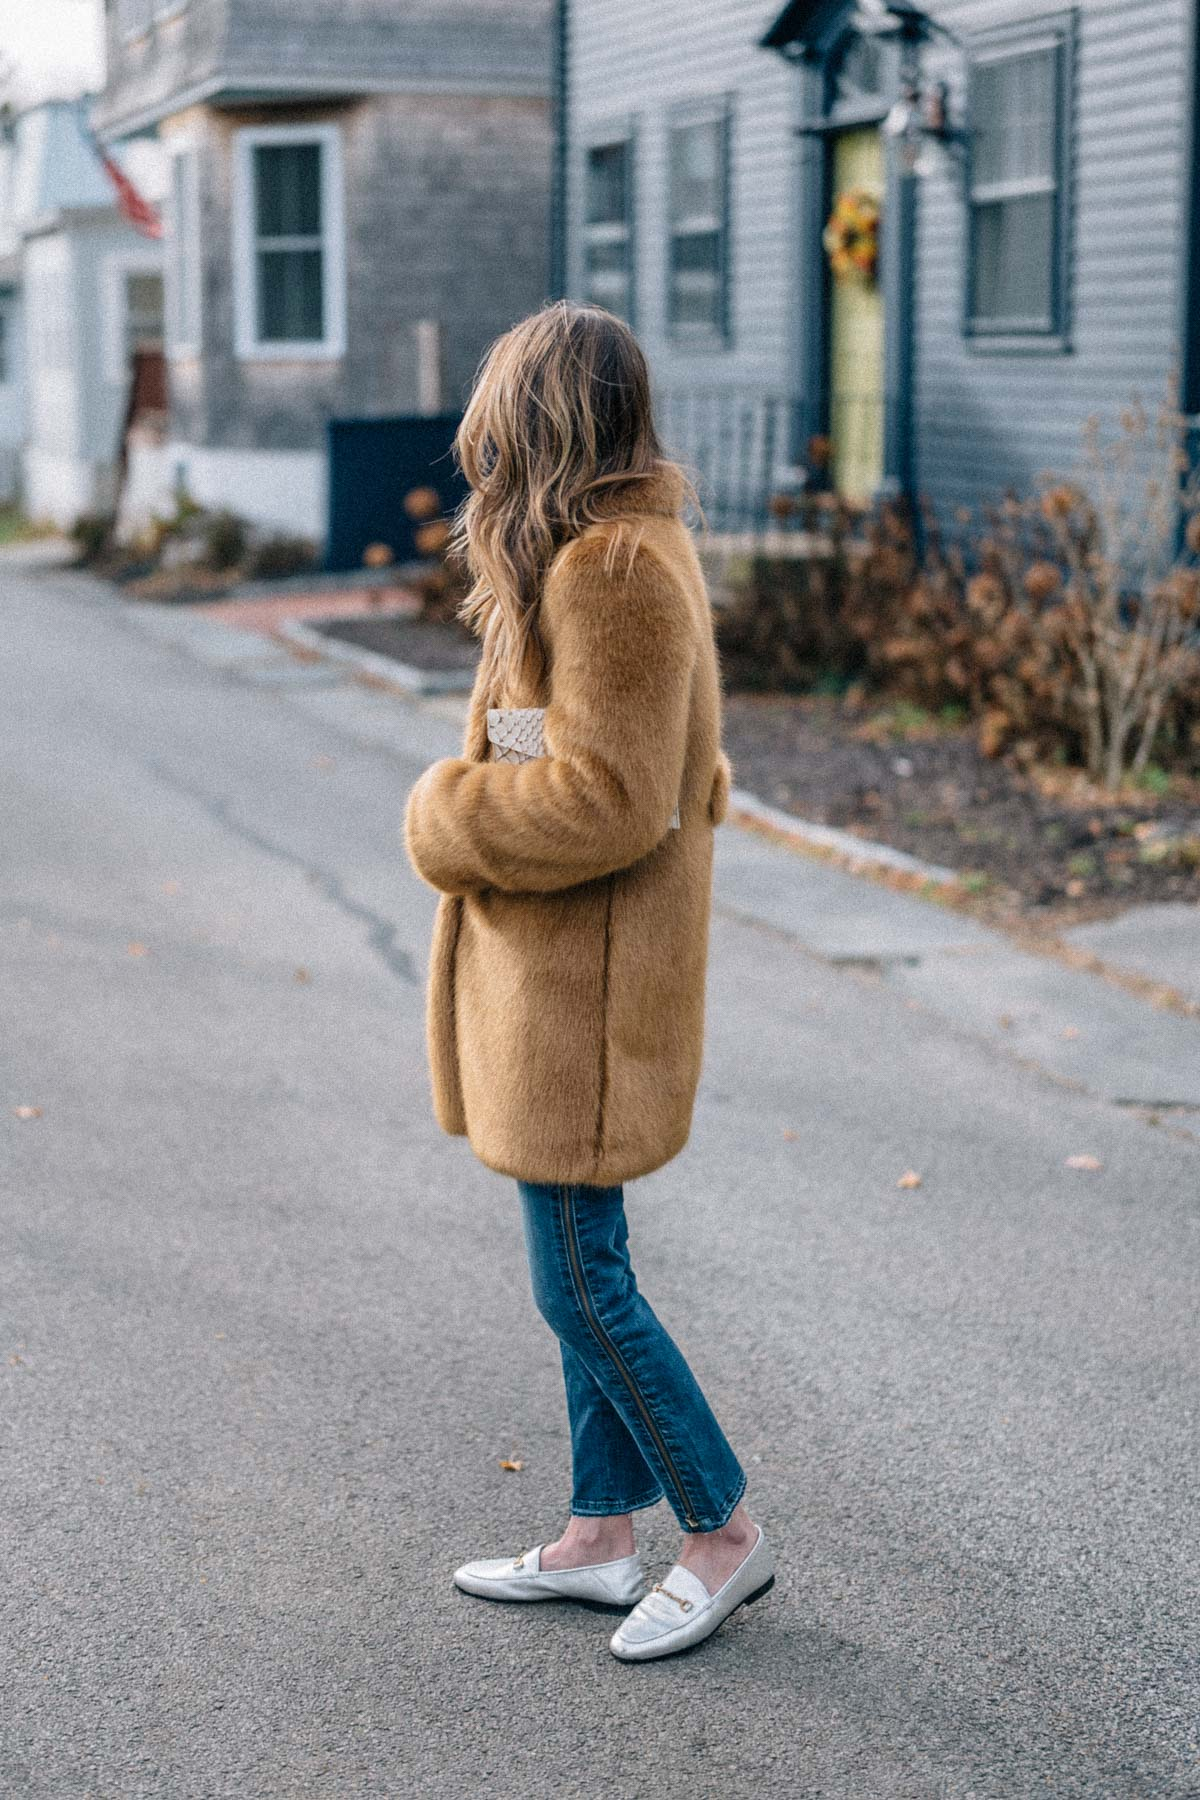 Jess Ann Kirby styles her custom Frilly faux fur jacket with Paige jeans and Sam Edelman loafers